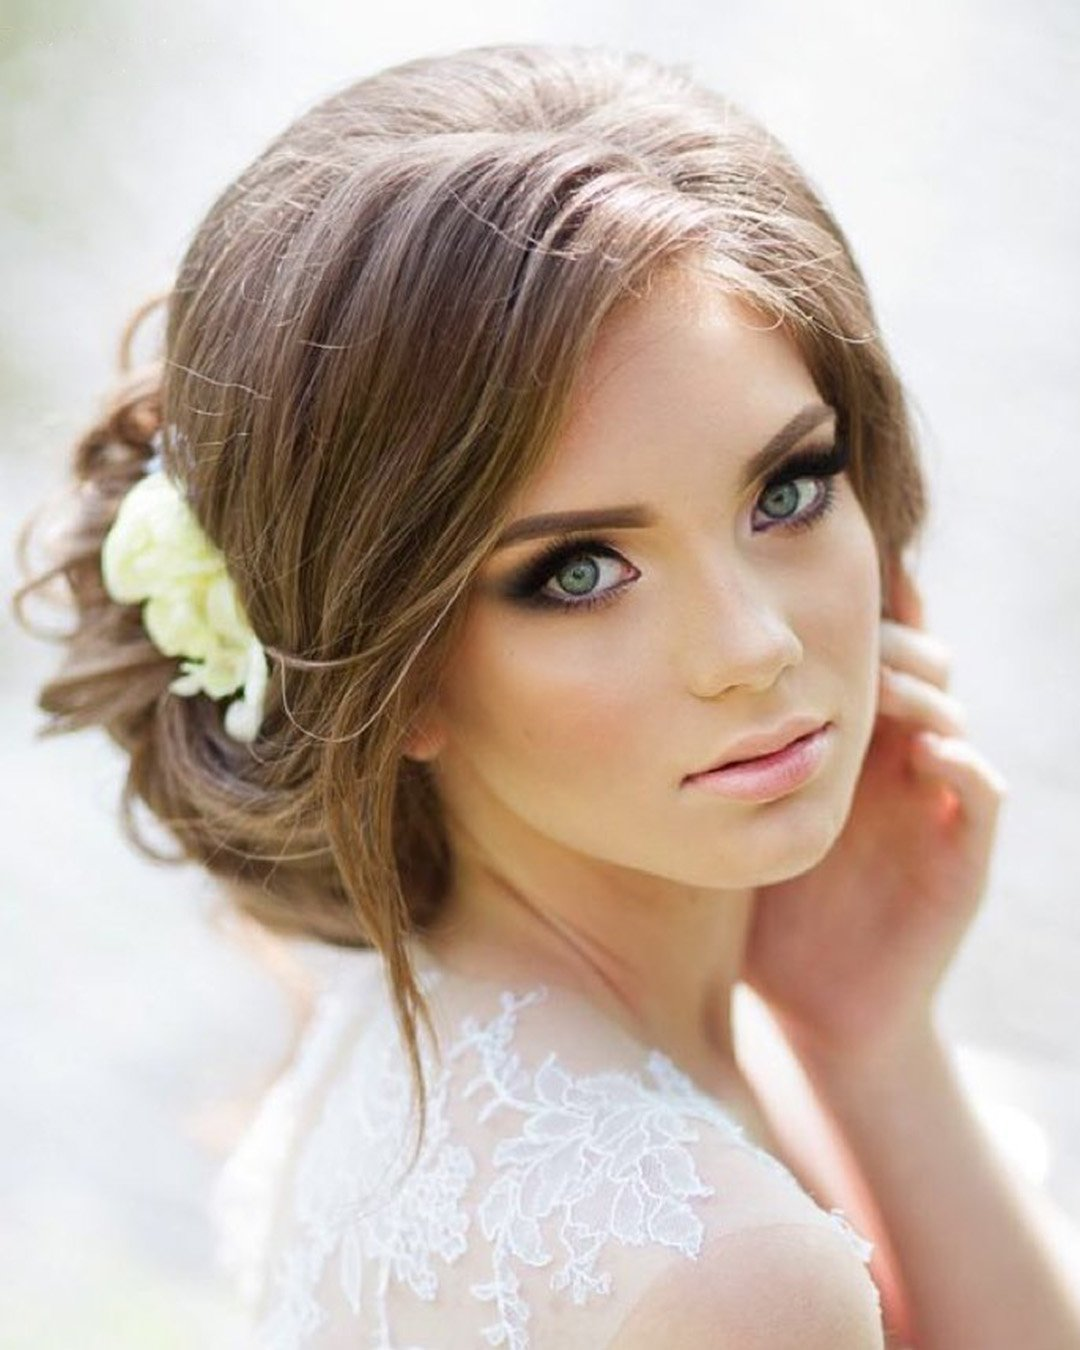 boho wedding makeup classic natural pink lips elstilespb